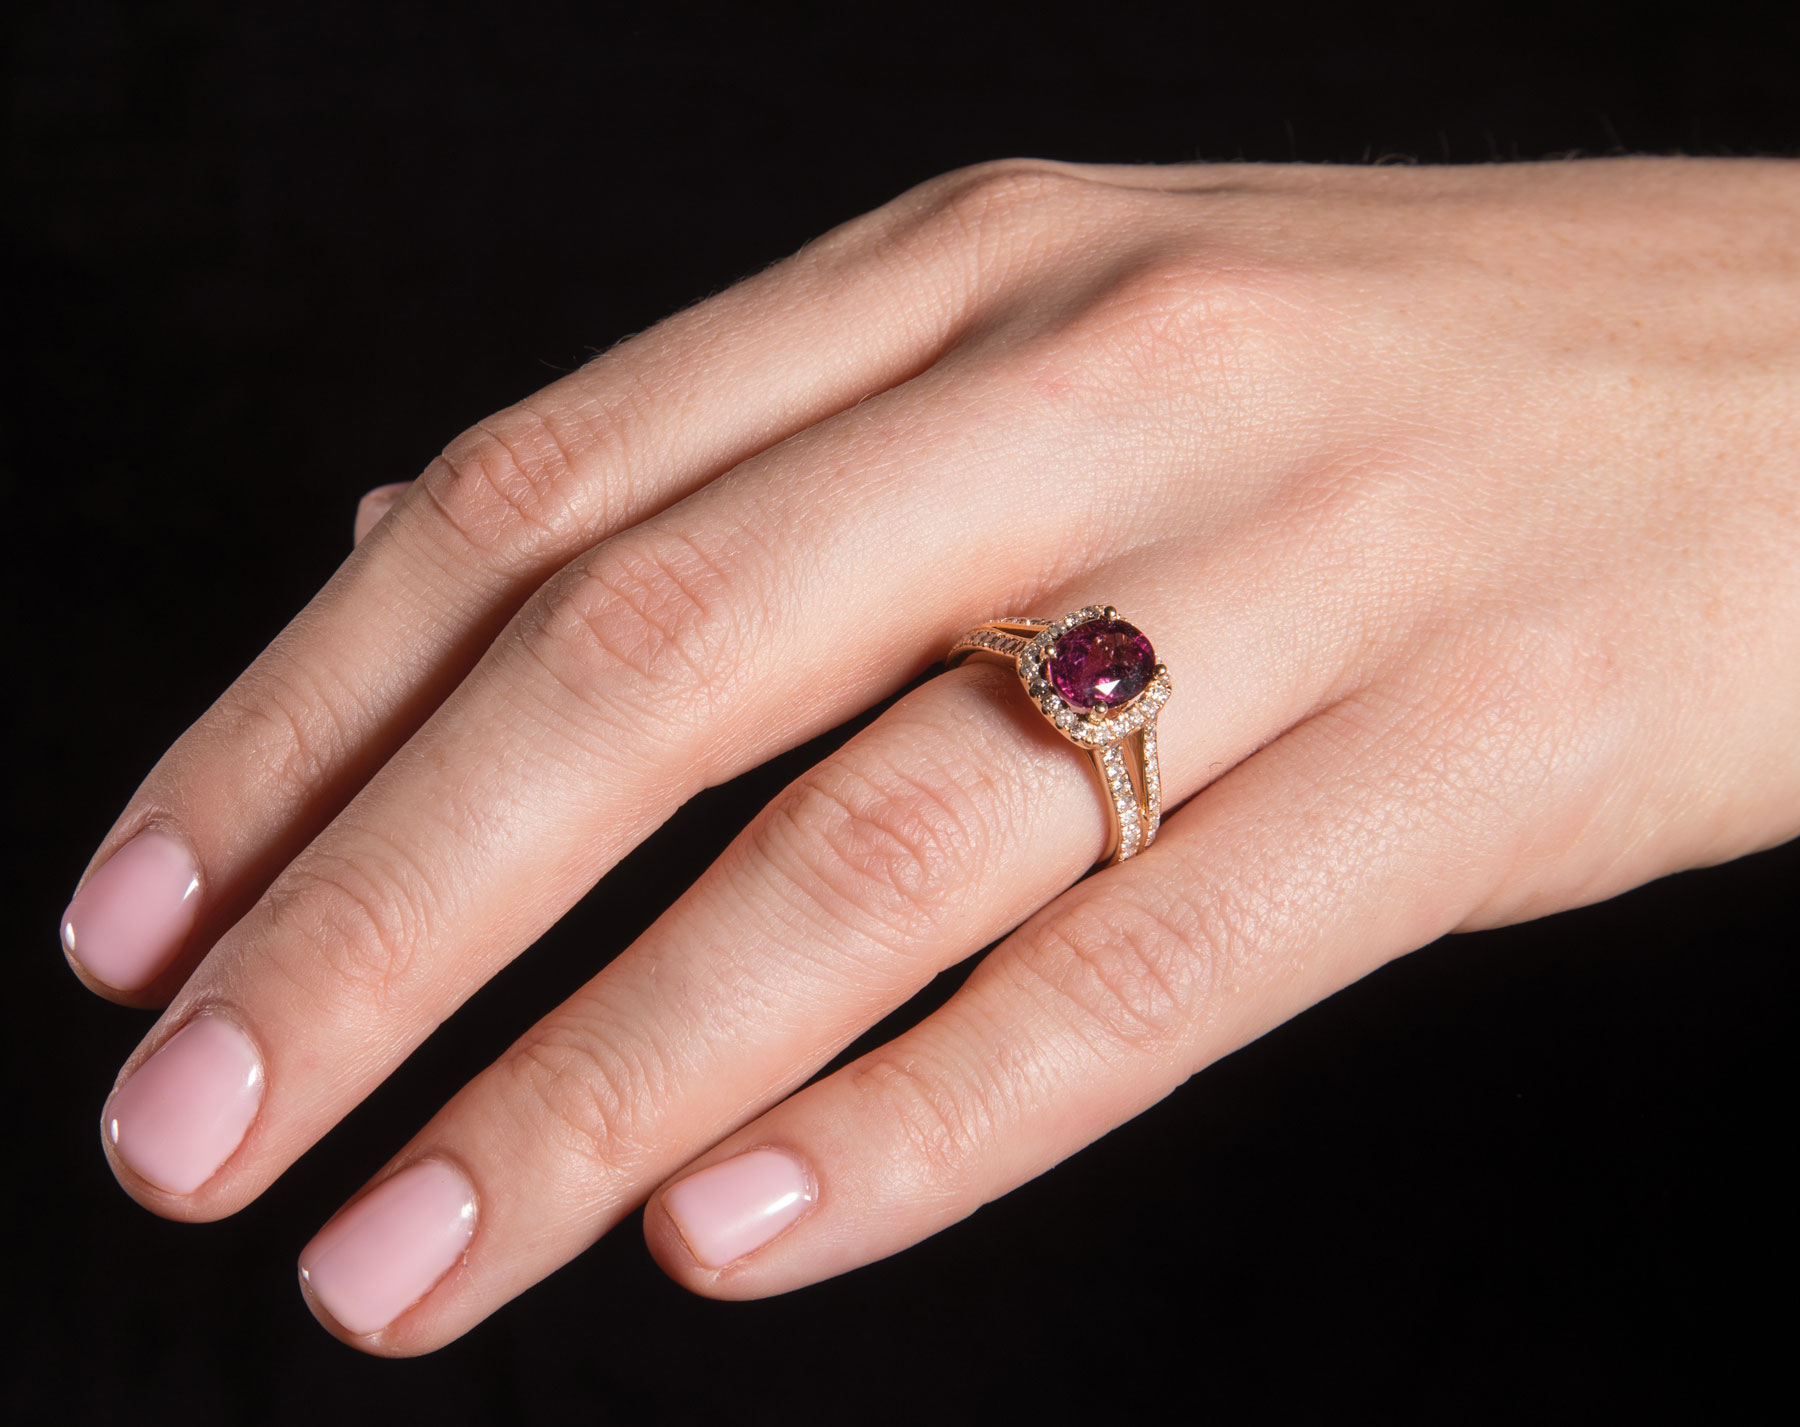 14 kt. Yellow Gold, Rubellite and Diamond Ring , prong set oval mixed cut rubellite, 8.50 x 6.80 x - Image 2 of 3